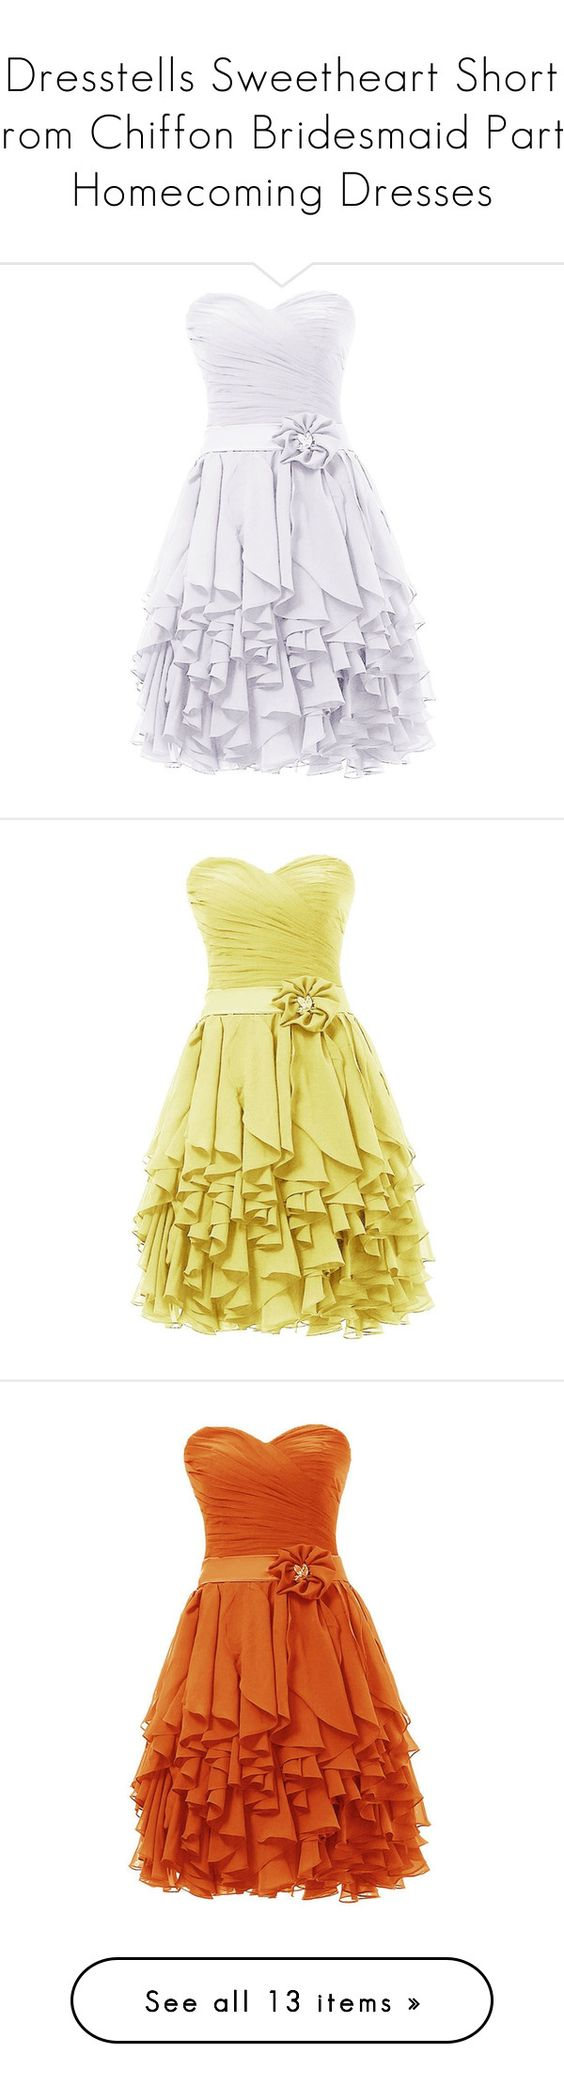 """""""Dresstells Sweetheart Short Prom Chiffon Bridesmaid Party Homecoming Dresses"""" by mackkaz ❤ liked on Polyvore featuring dresses, vestidos, chiffon dress, sweetheart dress, homecoming dresses, bridesmaid dresses, chiffon prom dresses, gowns, yellow and beige cocktail dress"""